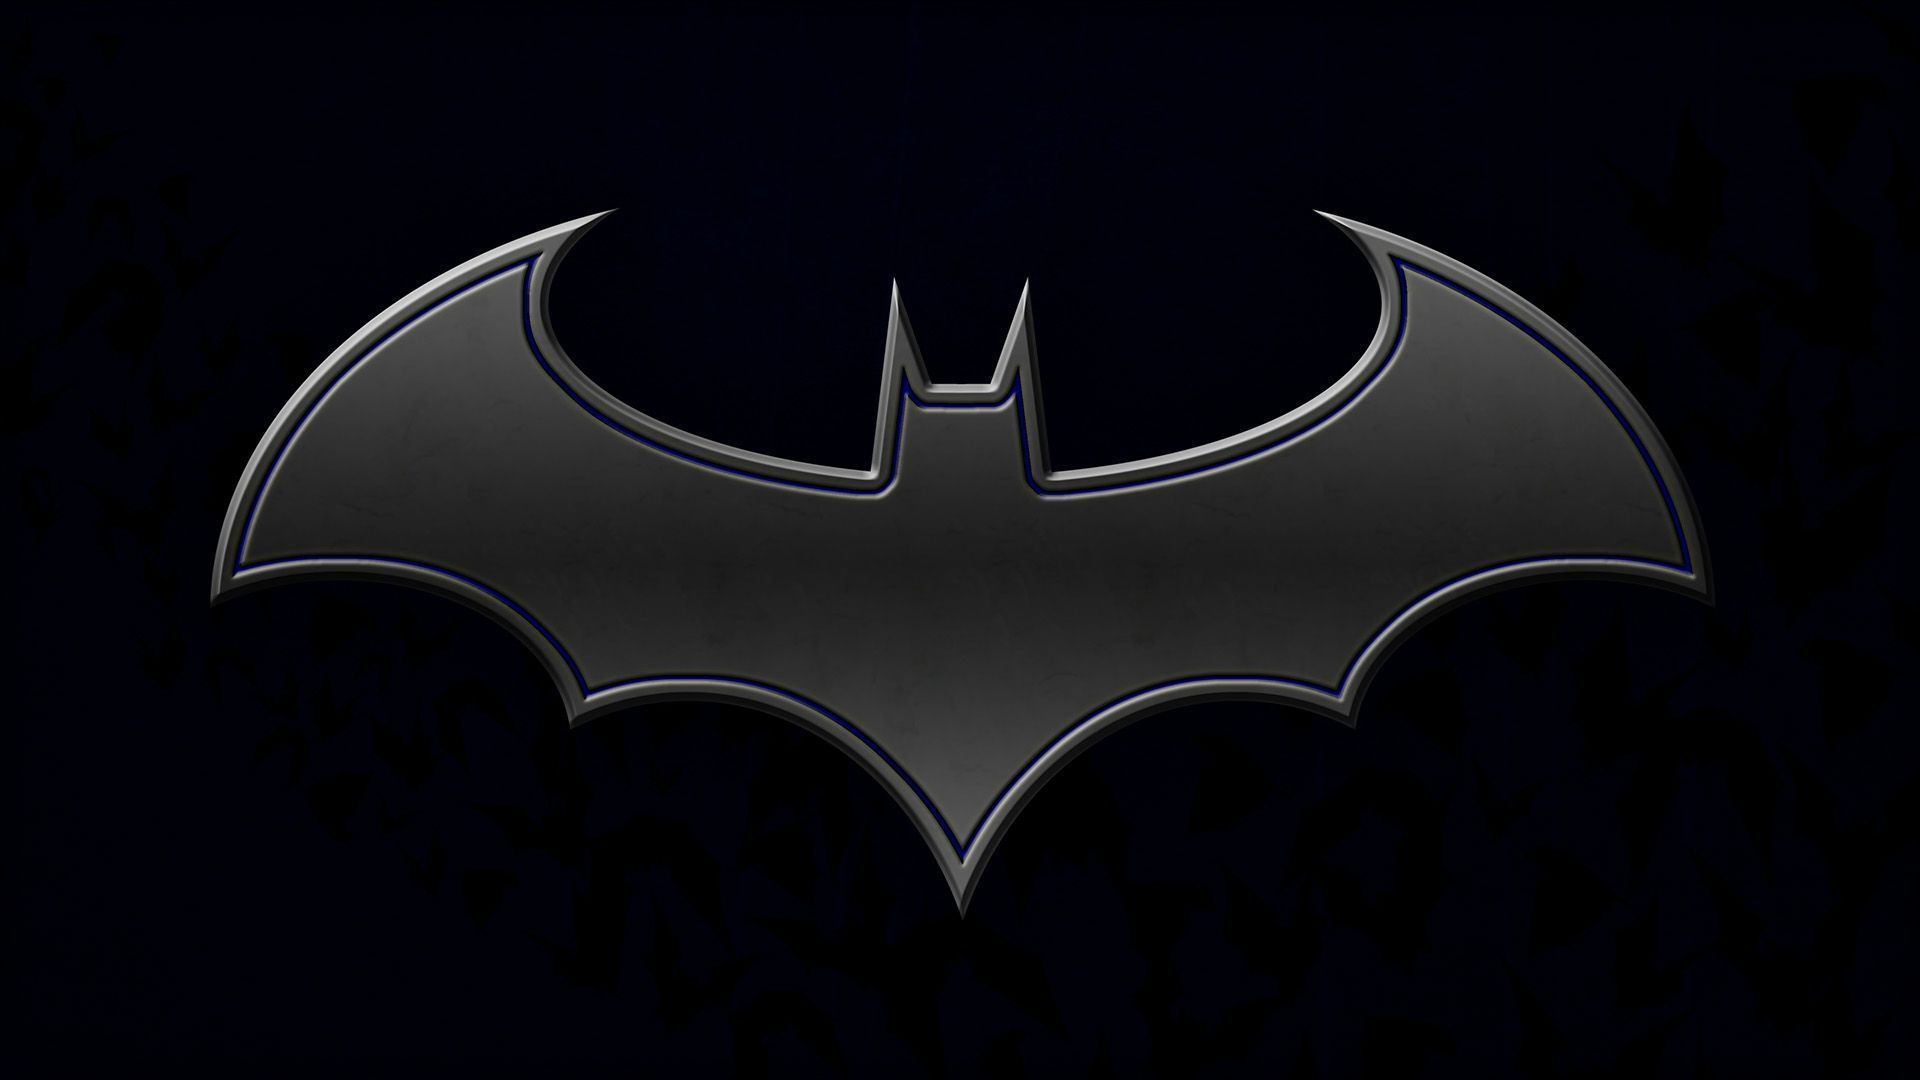 Best Ideas About Batman Wallpapers For Mobile On Pinterest 1920x1200 Black 36